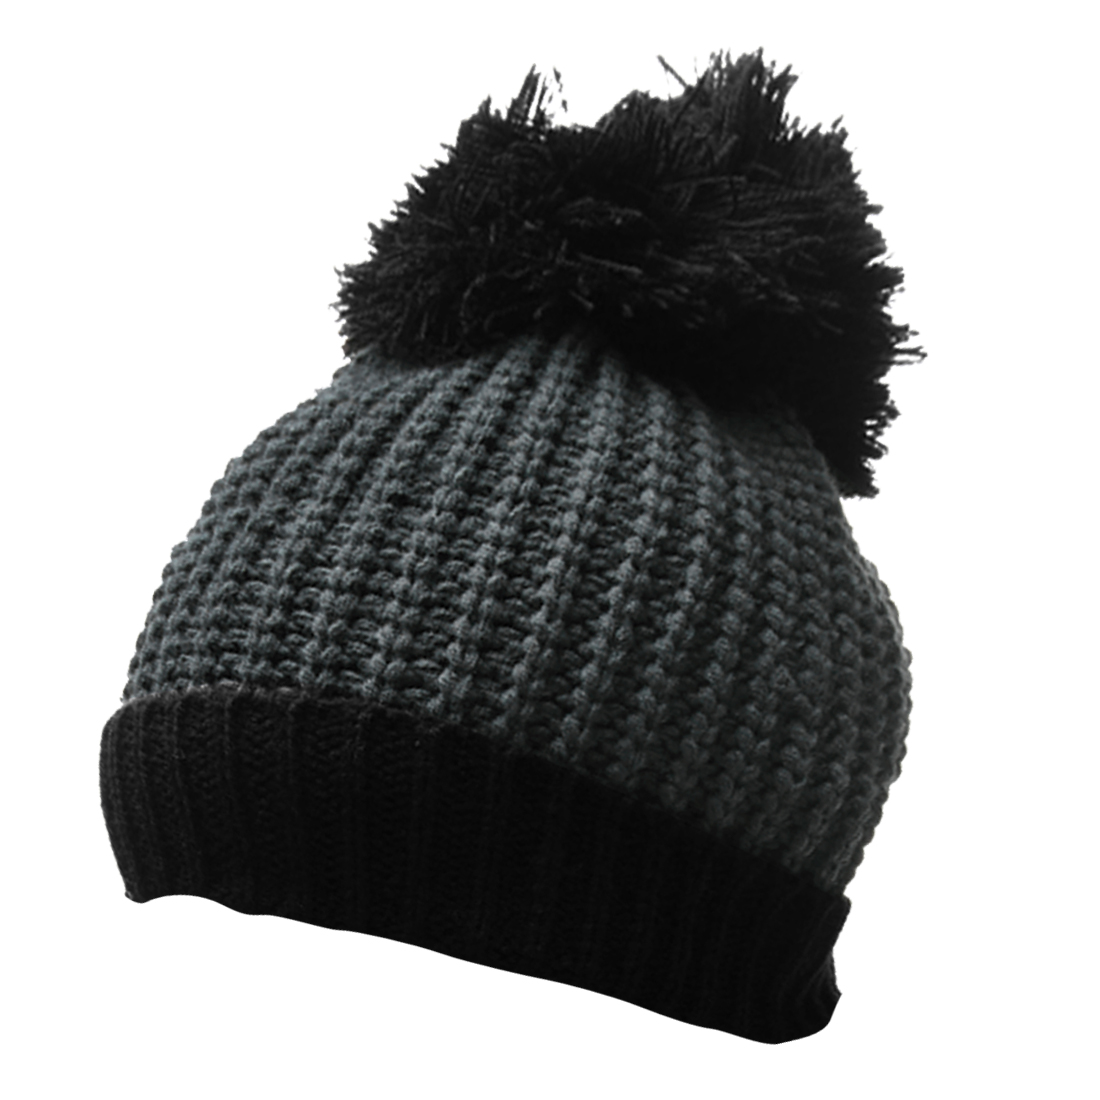 Mens Dark Gray Black Textured Pom-pom Top Stretchy Winter Beanie Hat